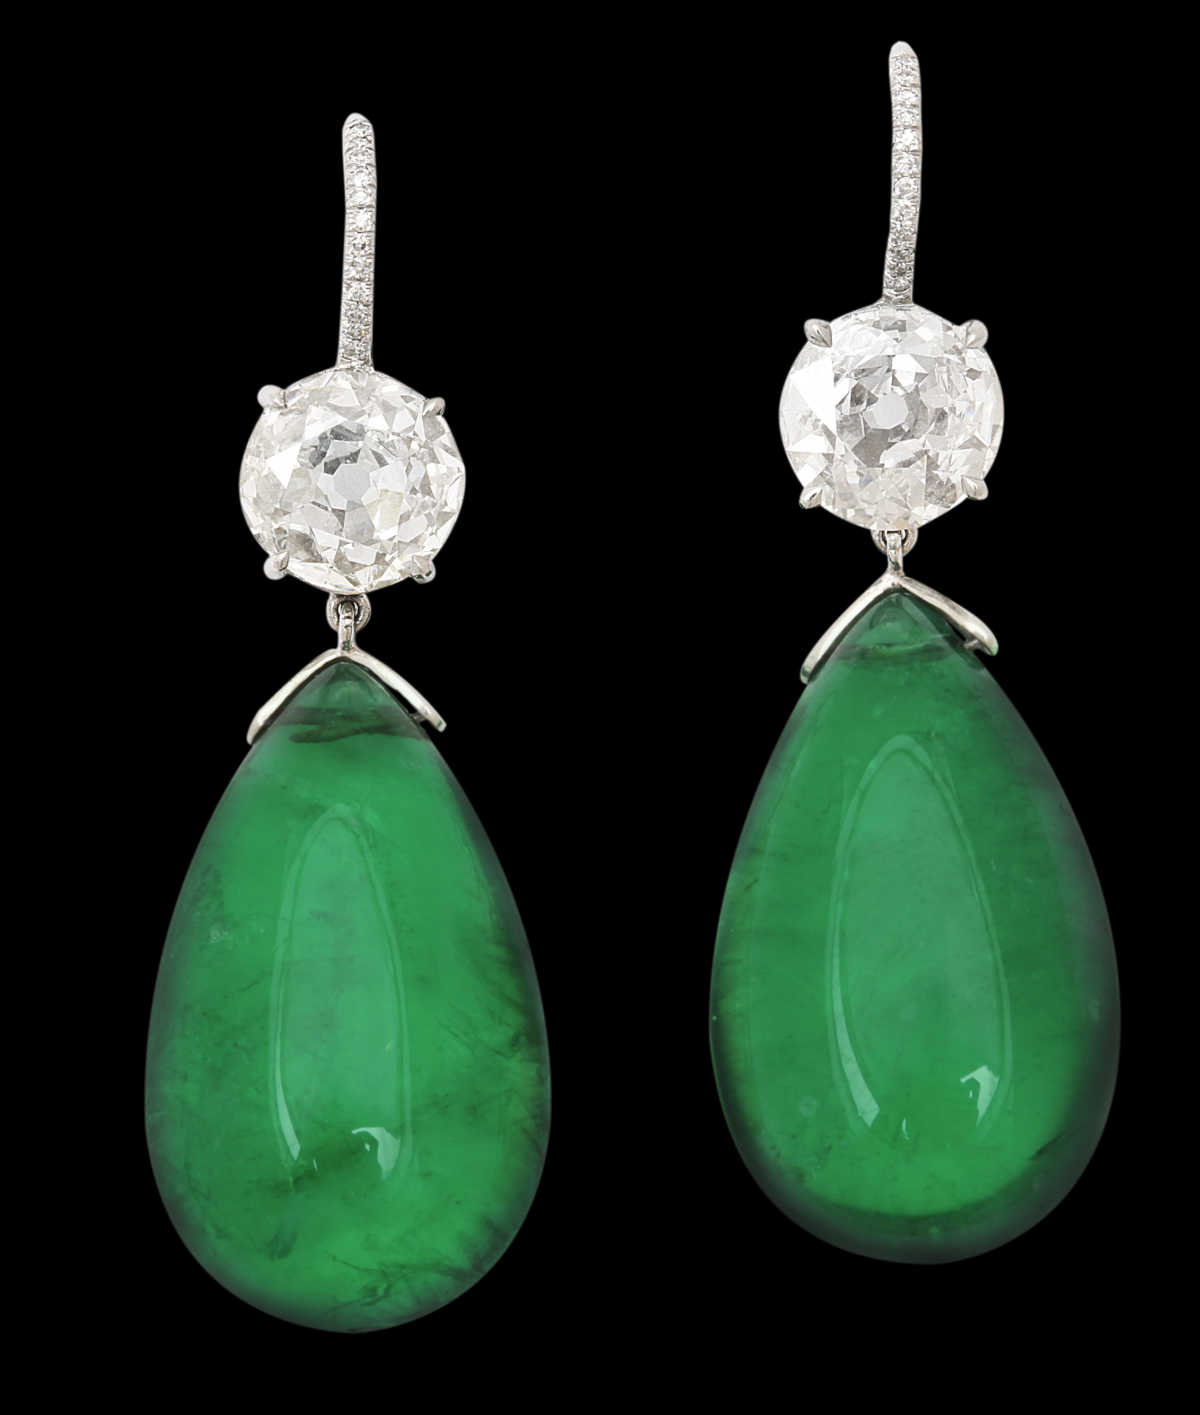 magnificent-emerald-earrings-over-85-carats